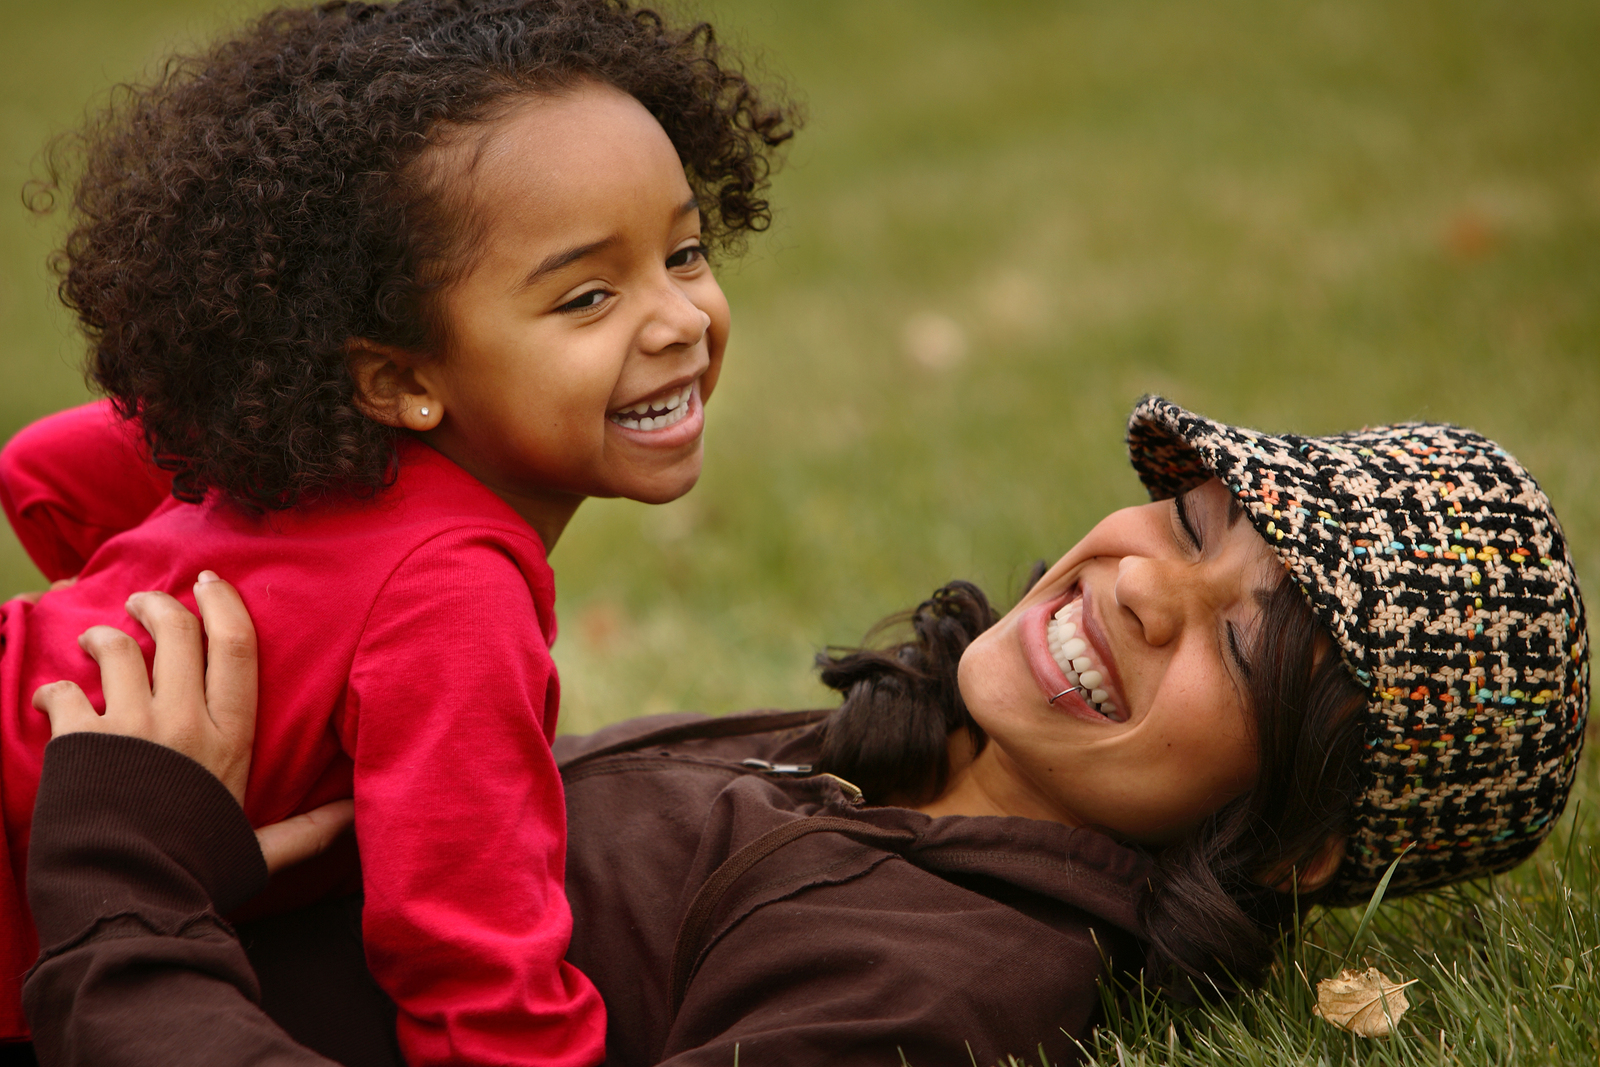 I recommend the following resources to help you become a more mindful parent.